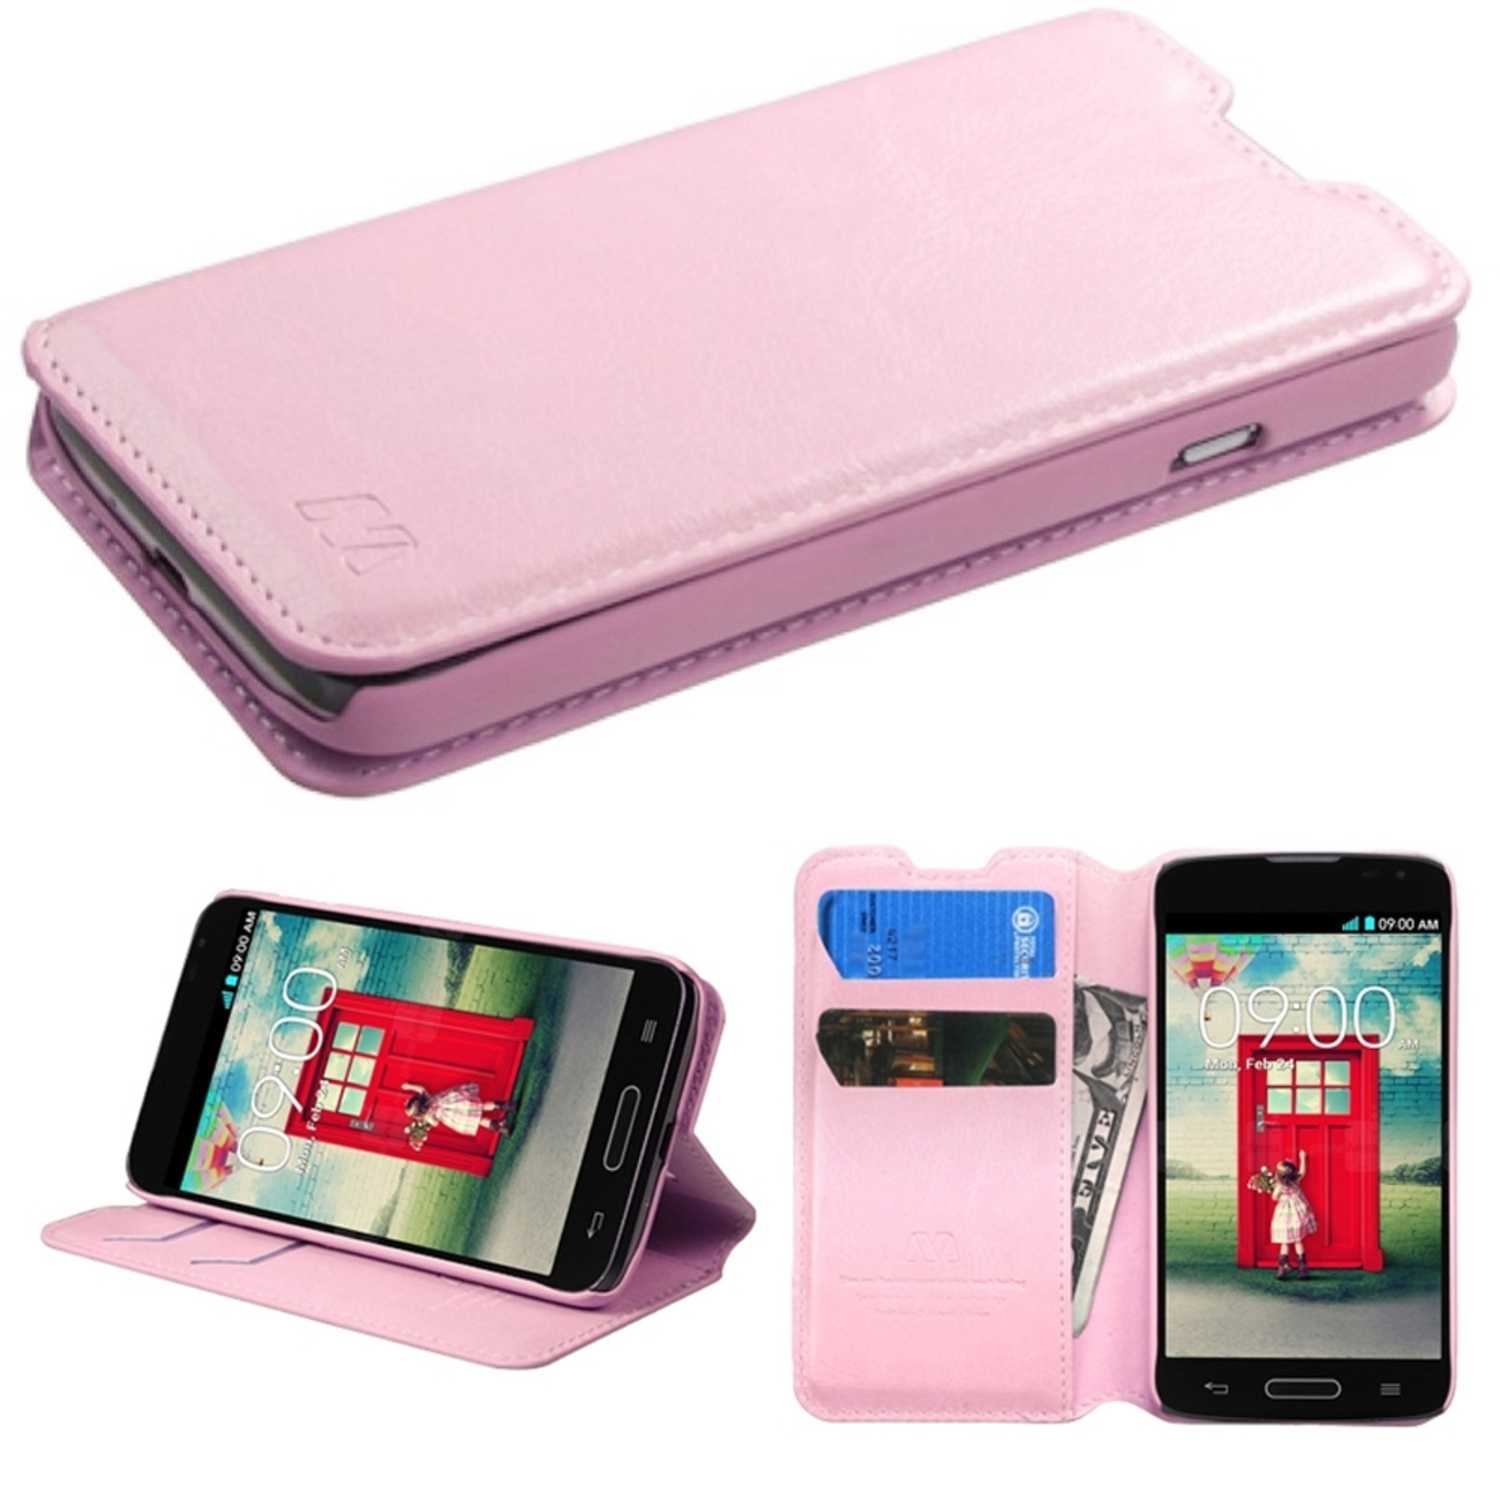 Insten Pink Leather Wallet Protective Case w/ Tray For LG Optimus L70 Optimus Exceed 2 Dual D325